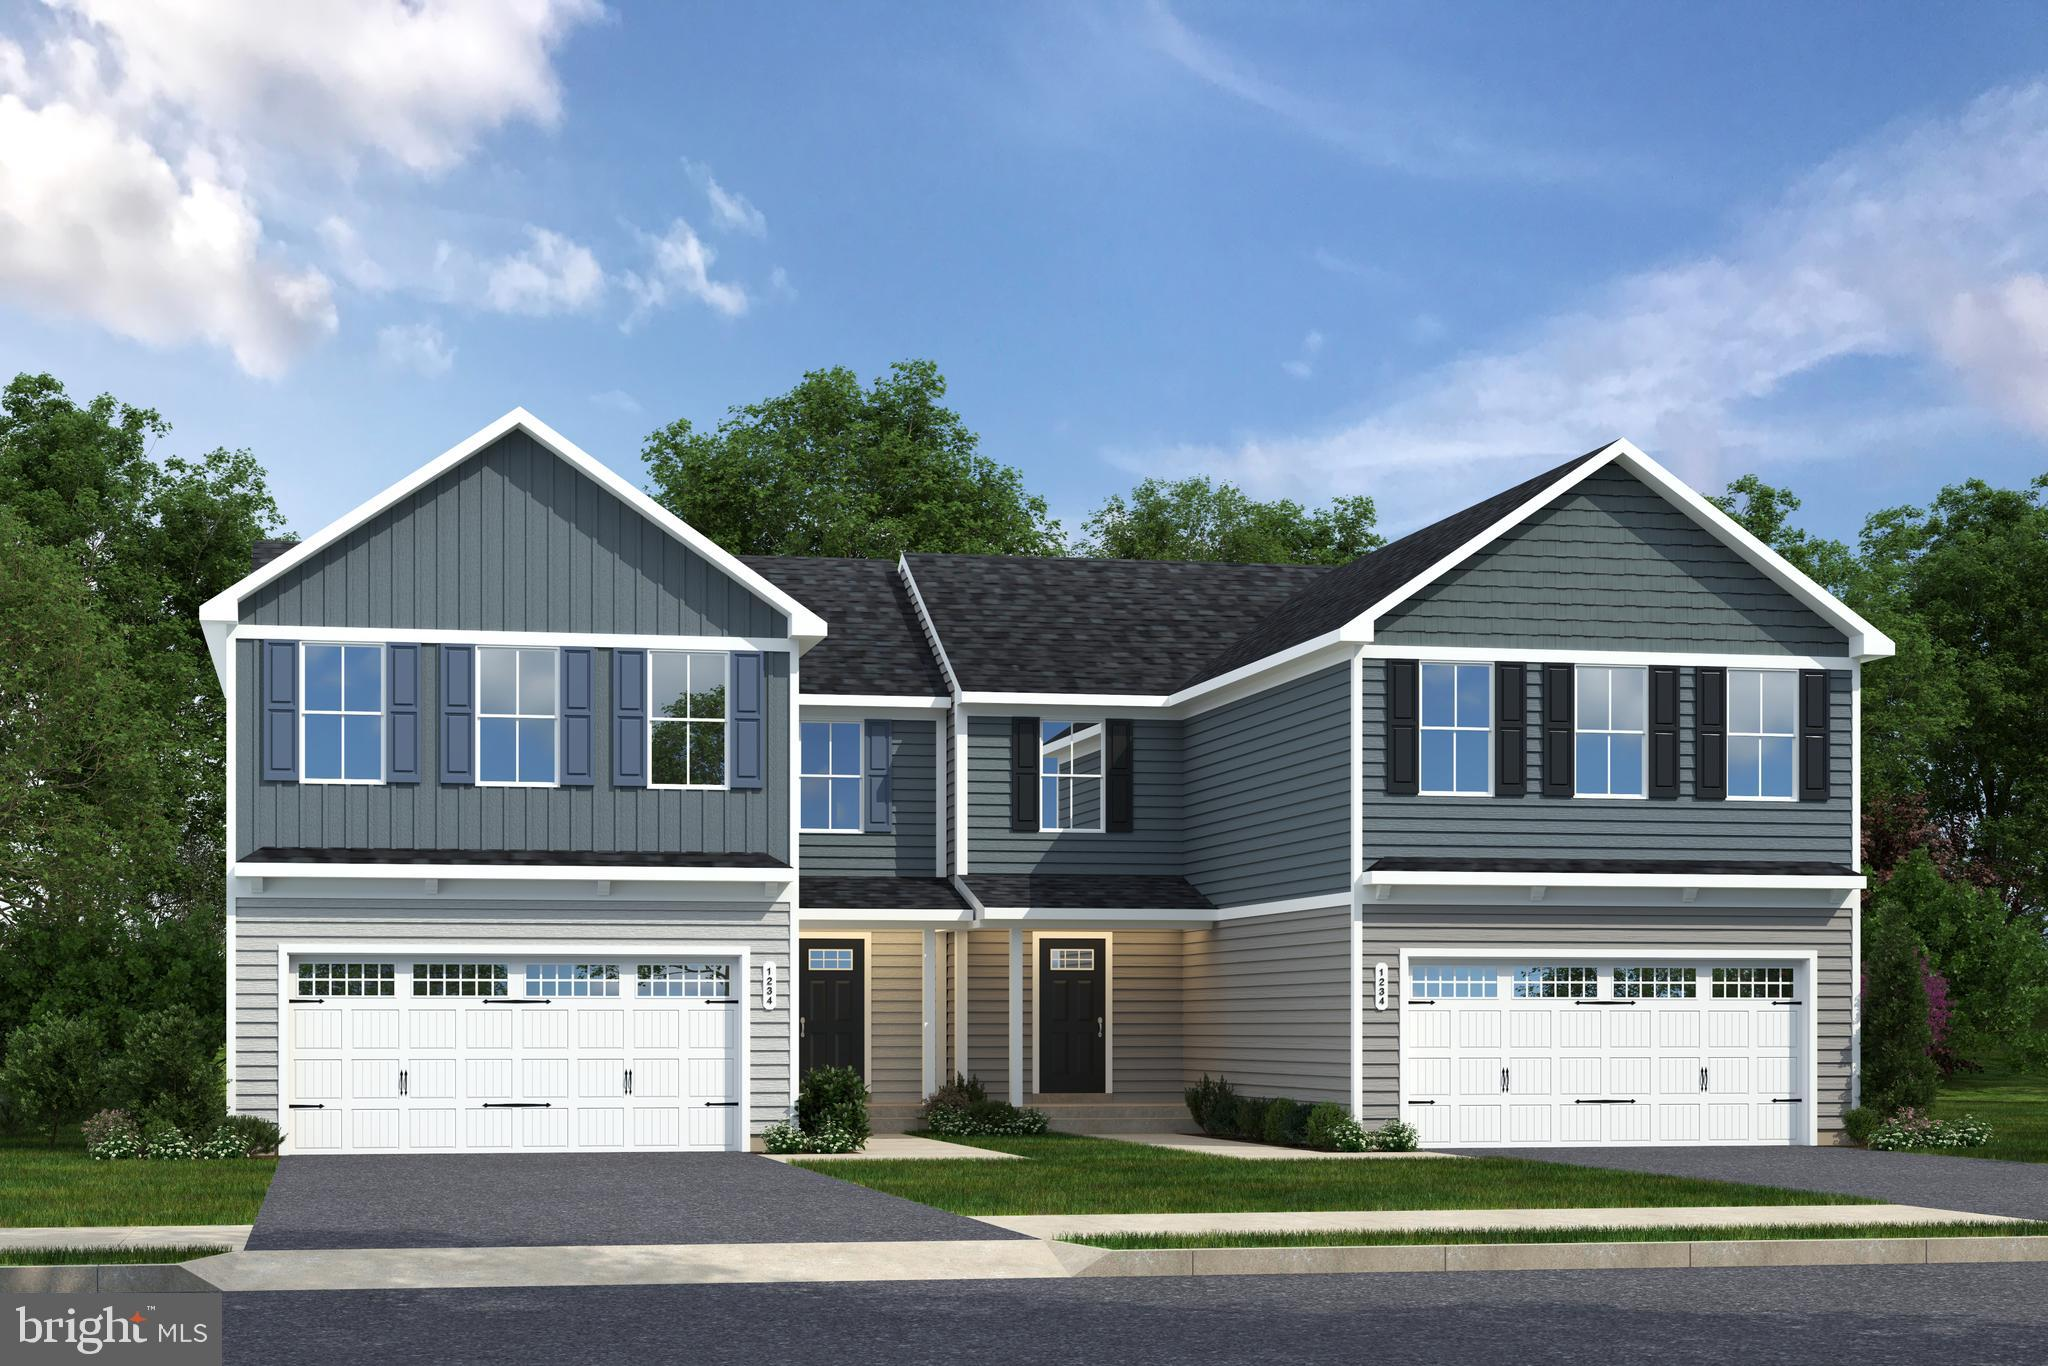 To be built. Other homesites available. Looking for a 4 bedroom home that offers lots of space and a